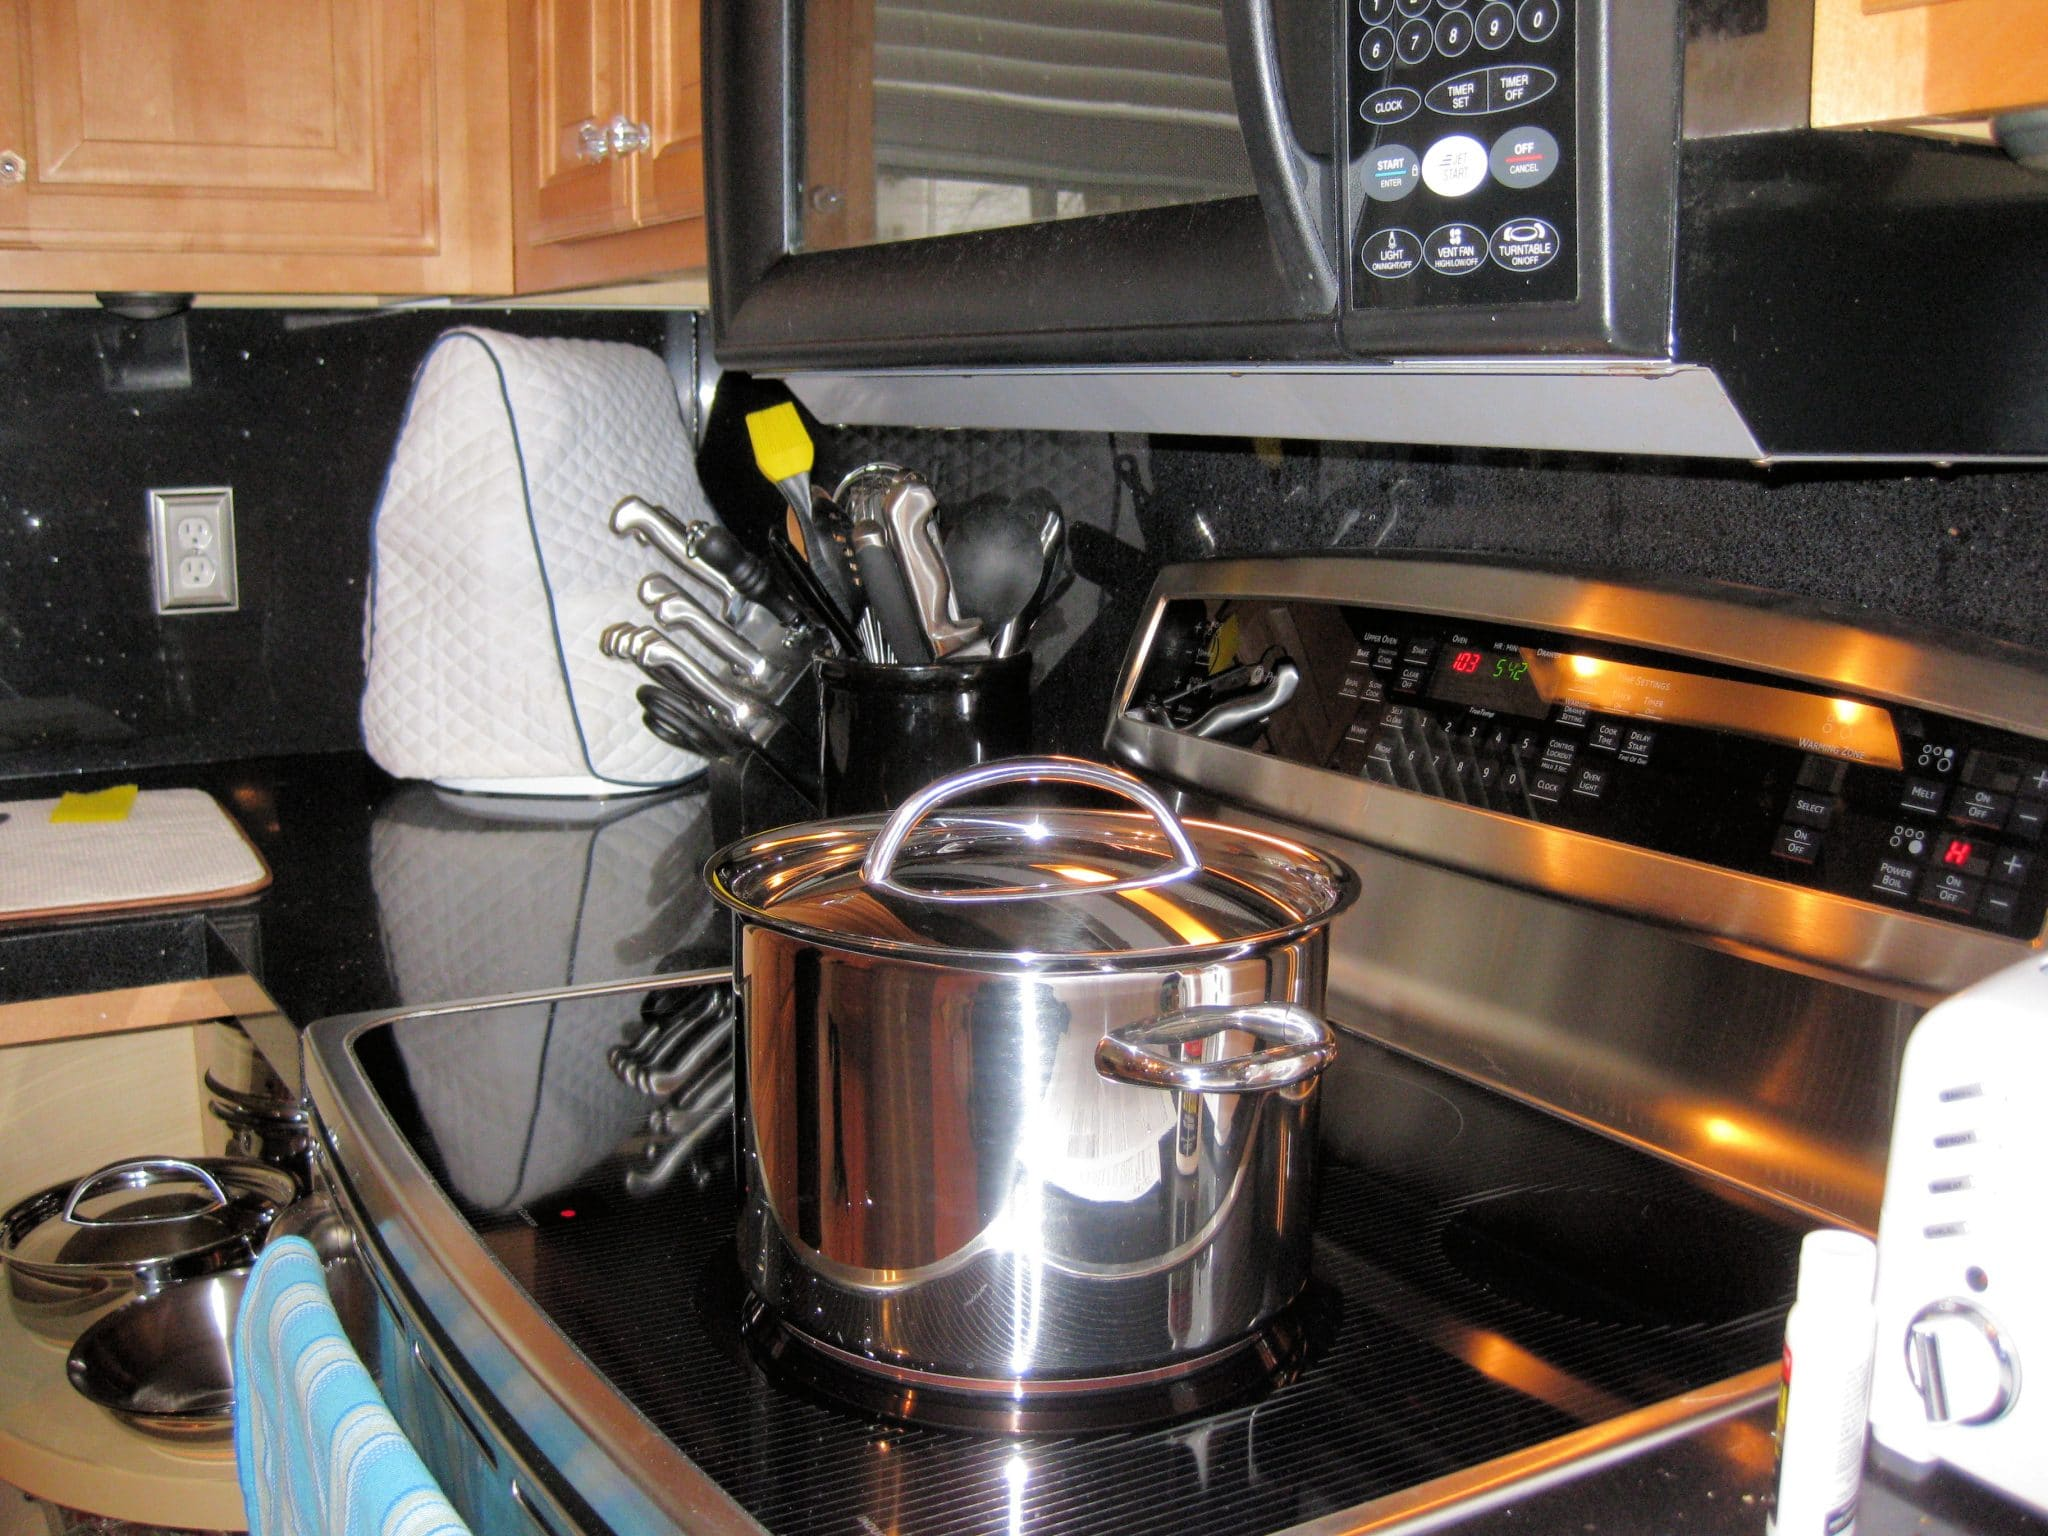 induction range pots and pans, glass cooktop pots and pans